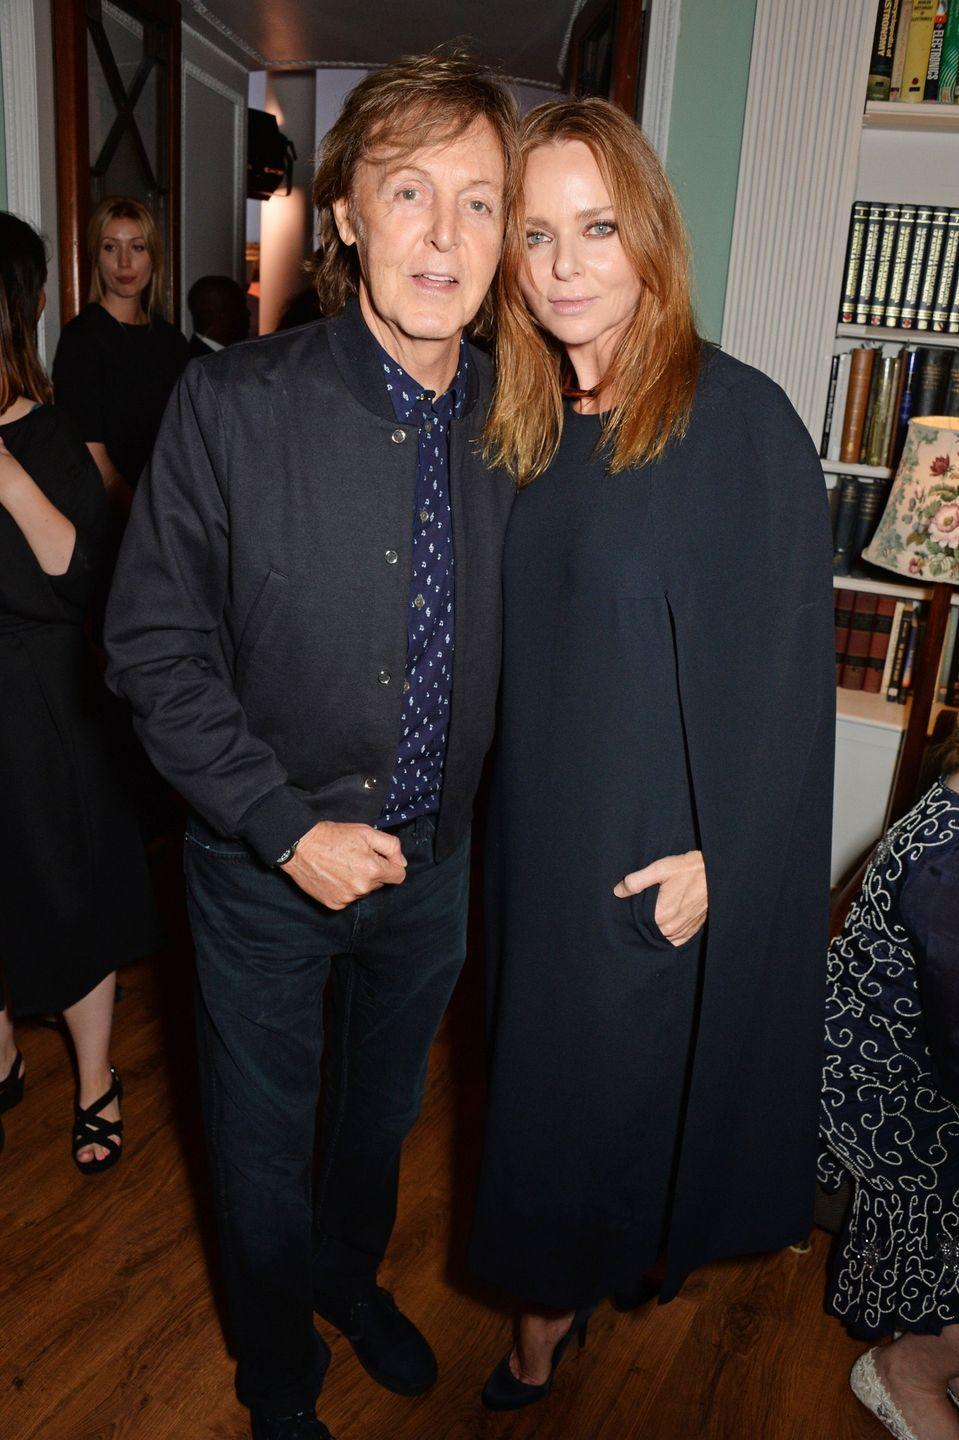 "<p><strong>Famous parent(s)</strong>: Beatle Paul McCartney <br><strong>What it was like</strong>: ""It certainly opened a lot of doors and certainly closed some minds,"" she's <a href=""http://edition.cnn.com/2014/11/26/business/stella-mccartney-parents-opened-doors/index.html"" rel=""nofollow noopener"" target=""_blank"" data-ylk=""slk:said"" class=""link rapid-noclick-resp"">said</a>. ""So I think there was a balance.""</p>"